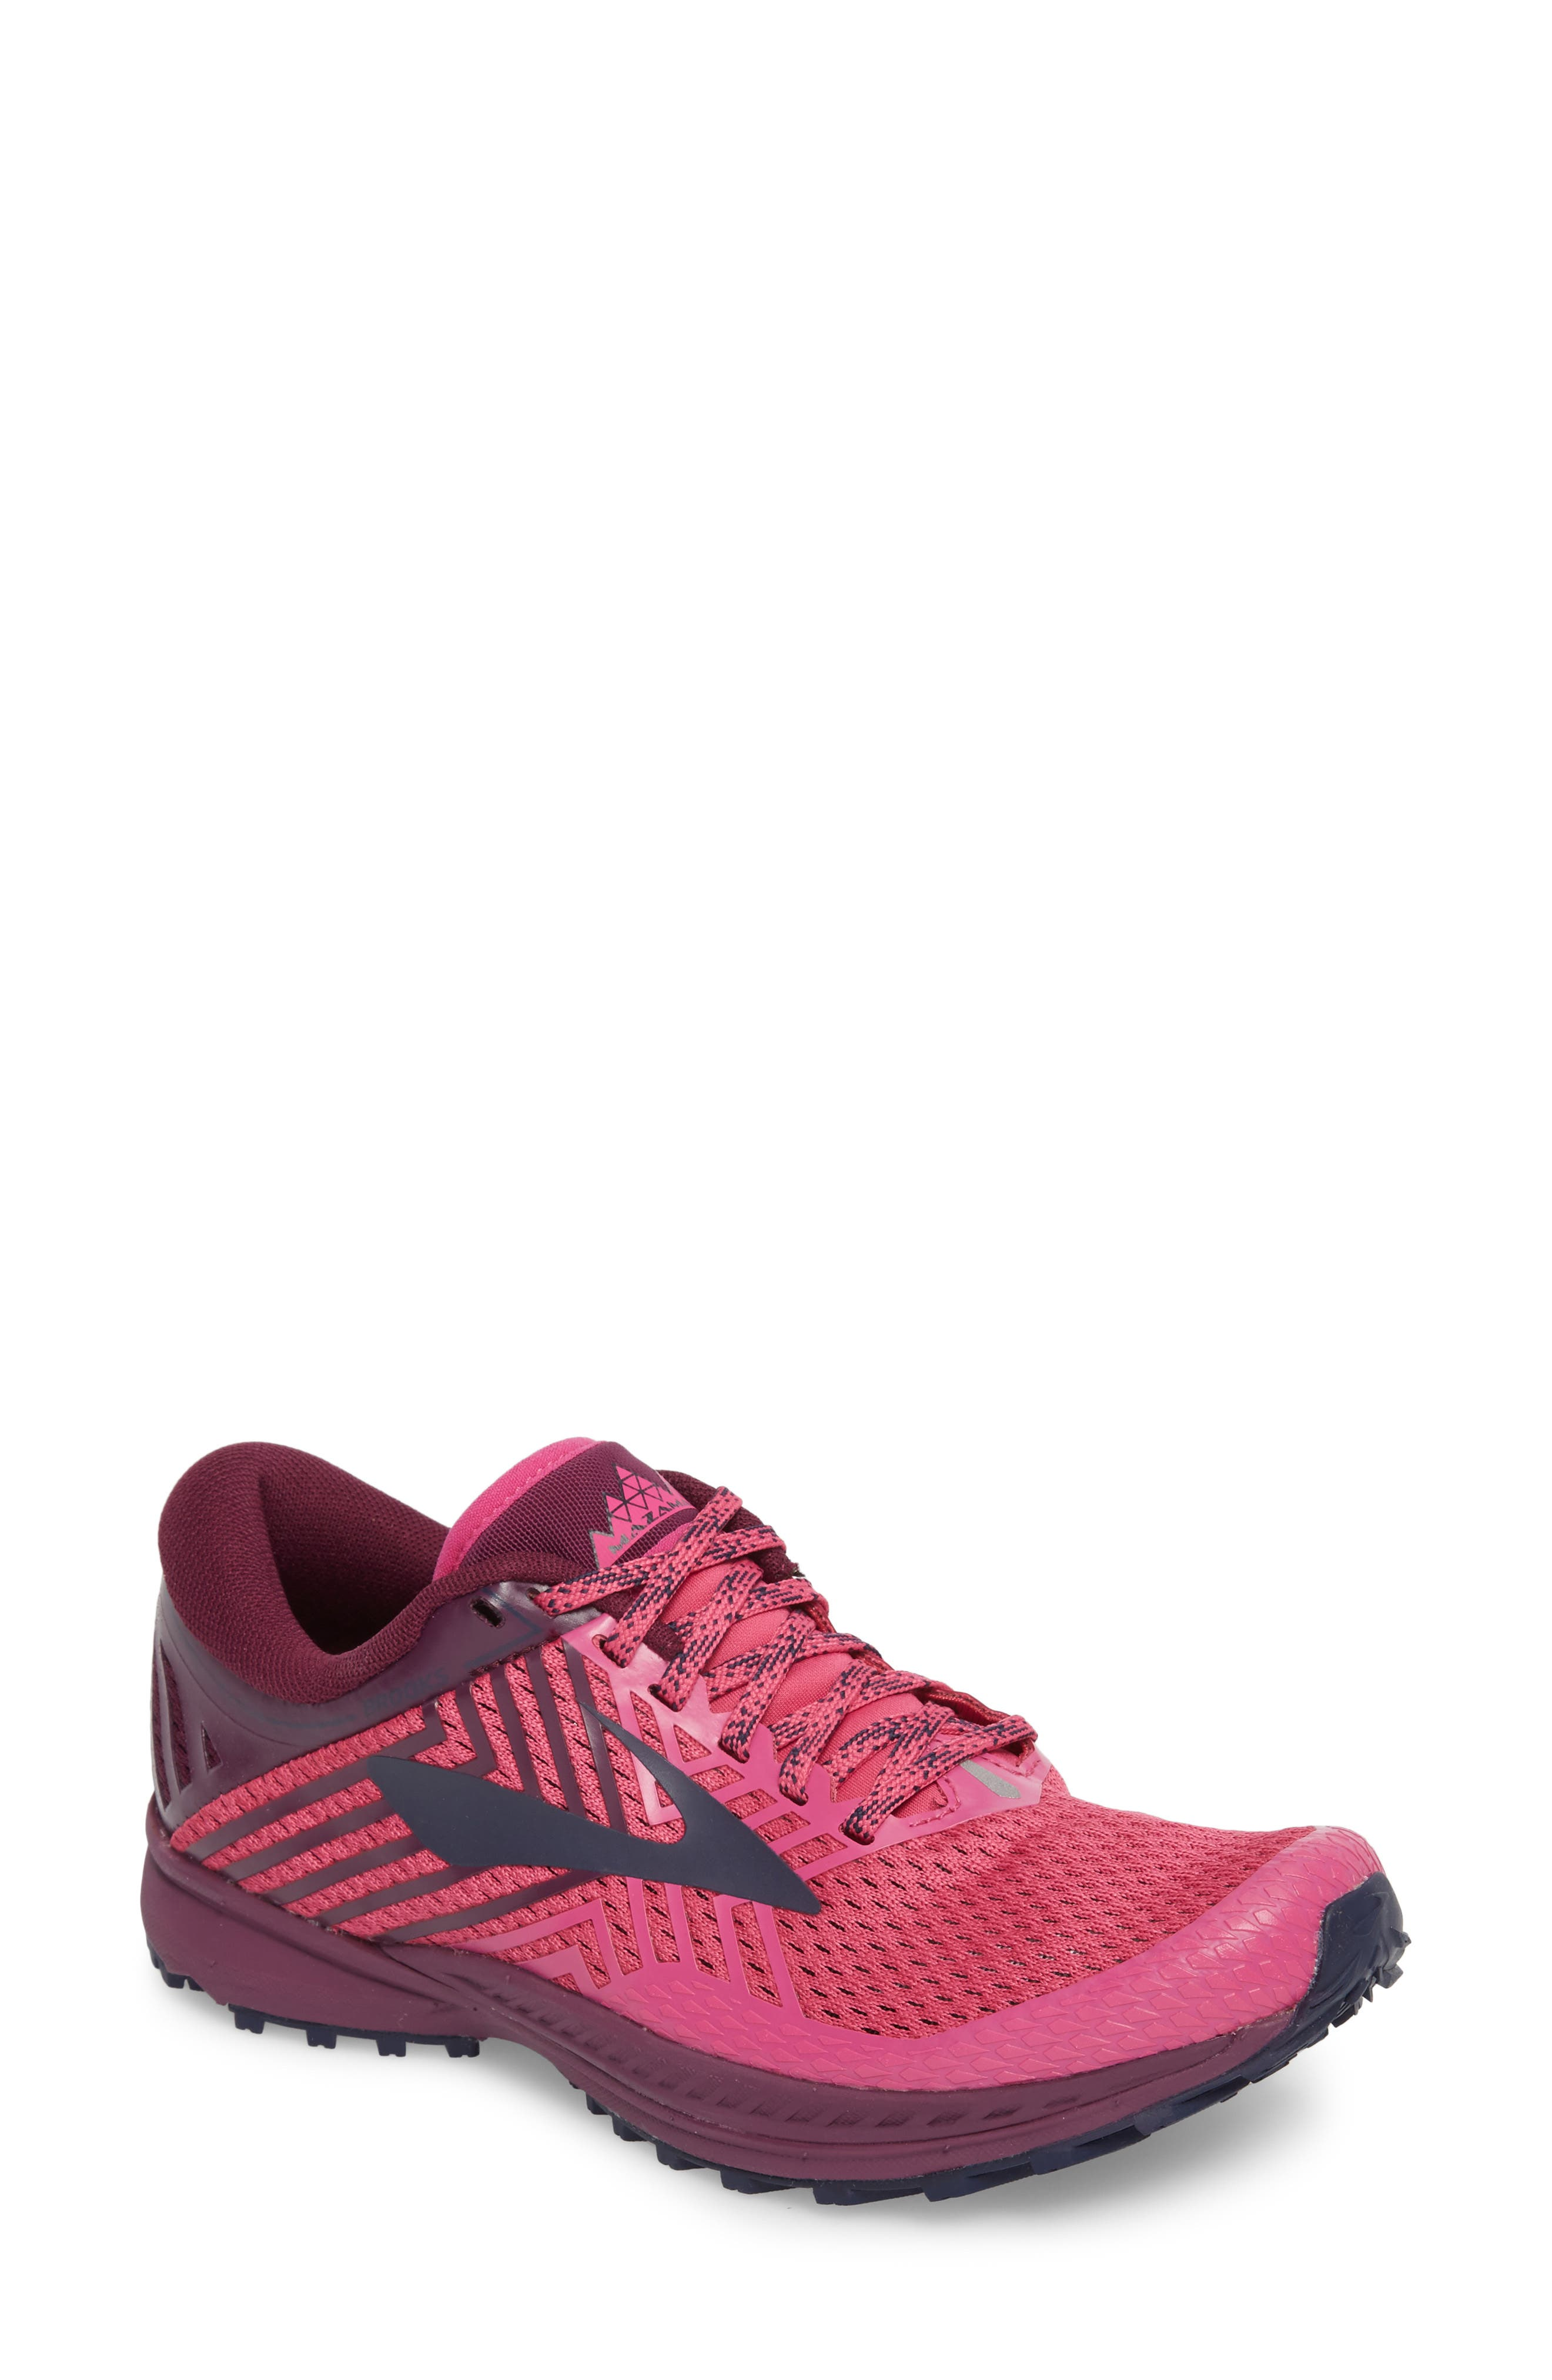 Main Image - Brooks Mazama 2 Trail Running Shoe (Women)